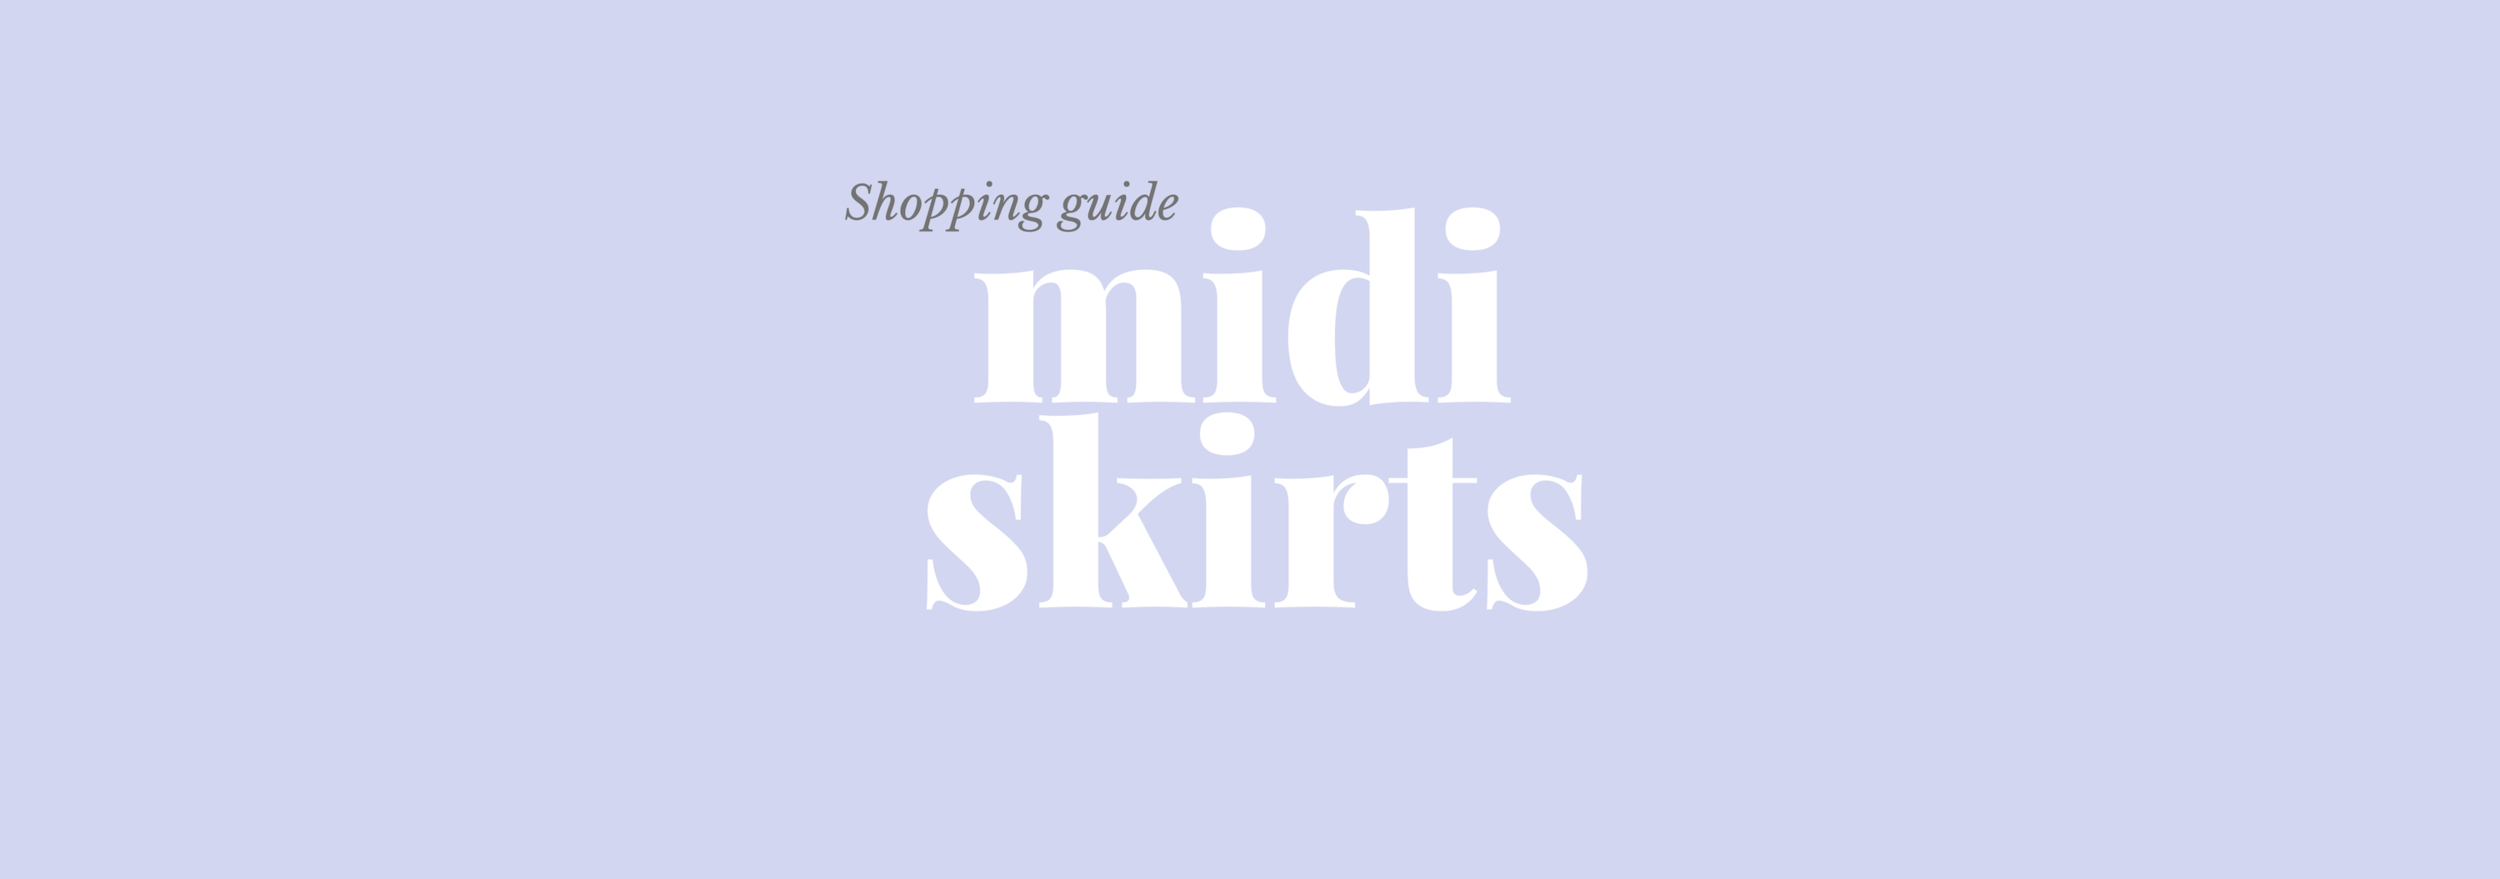 Shopping guide midi skirts.png